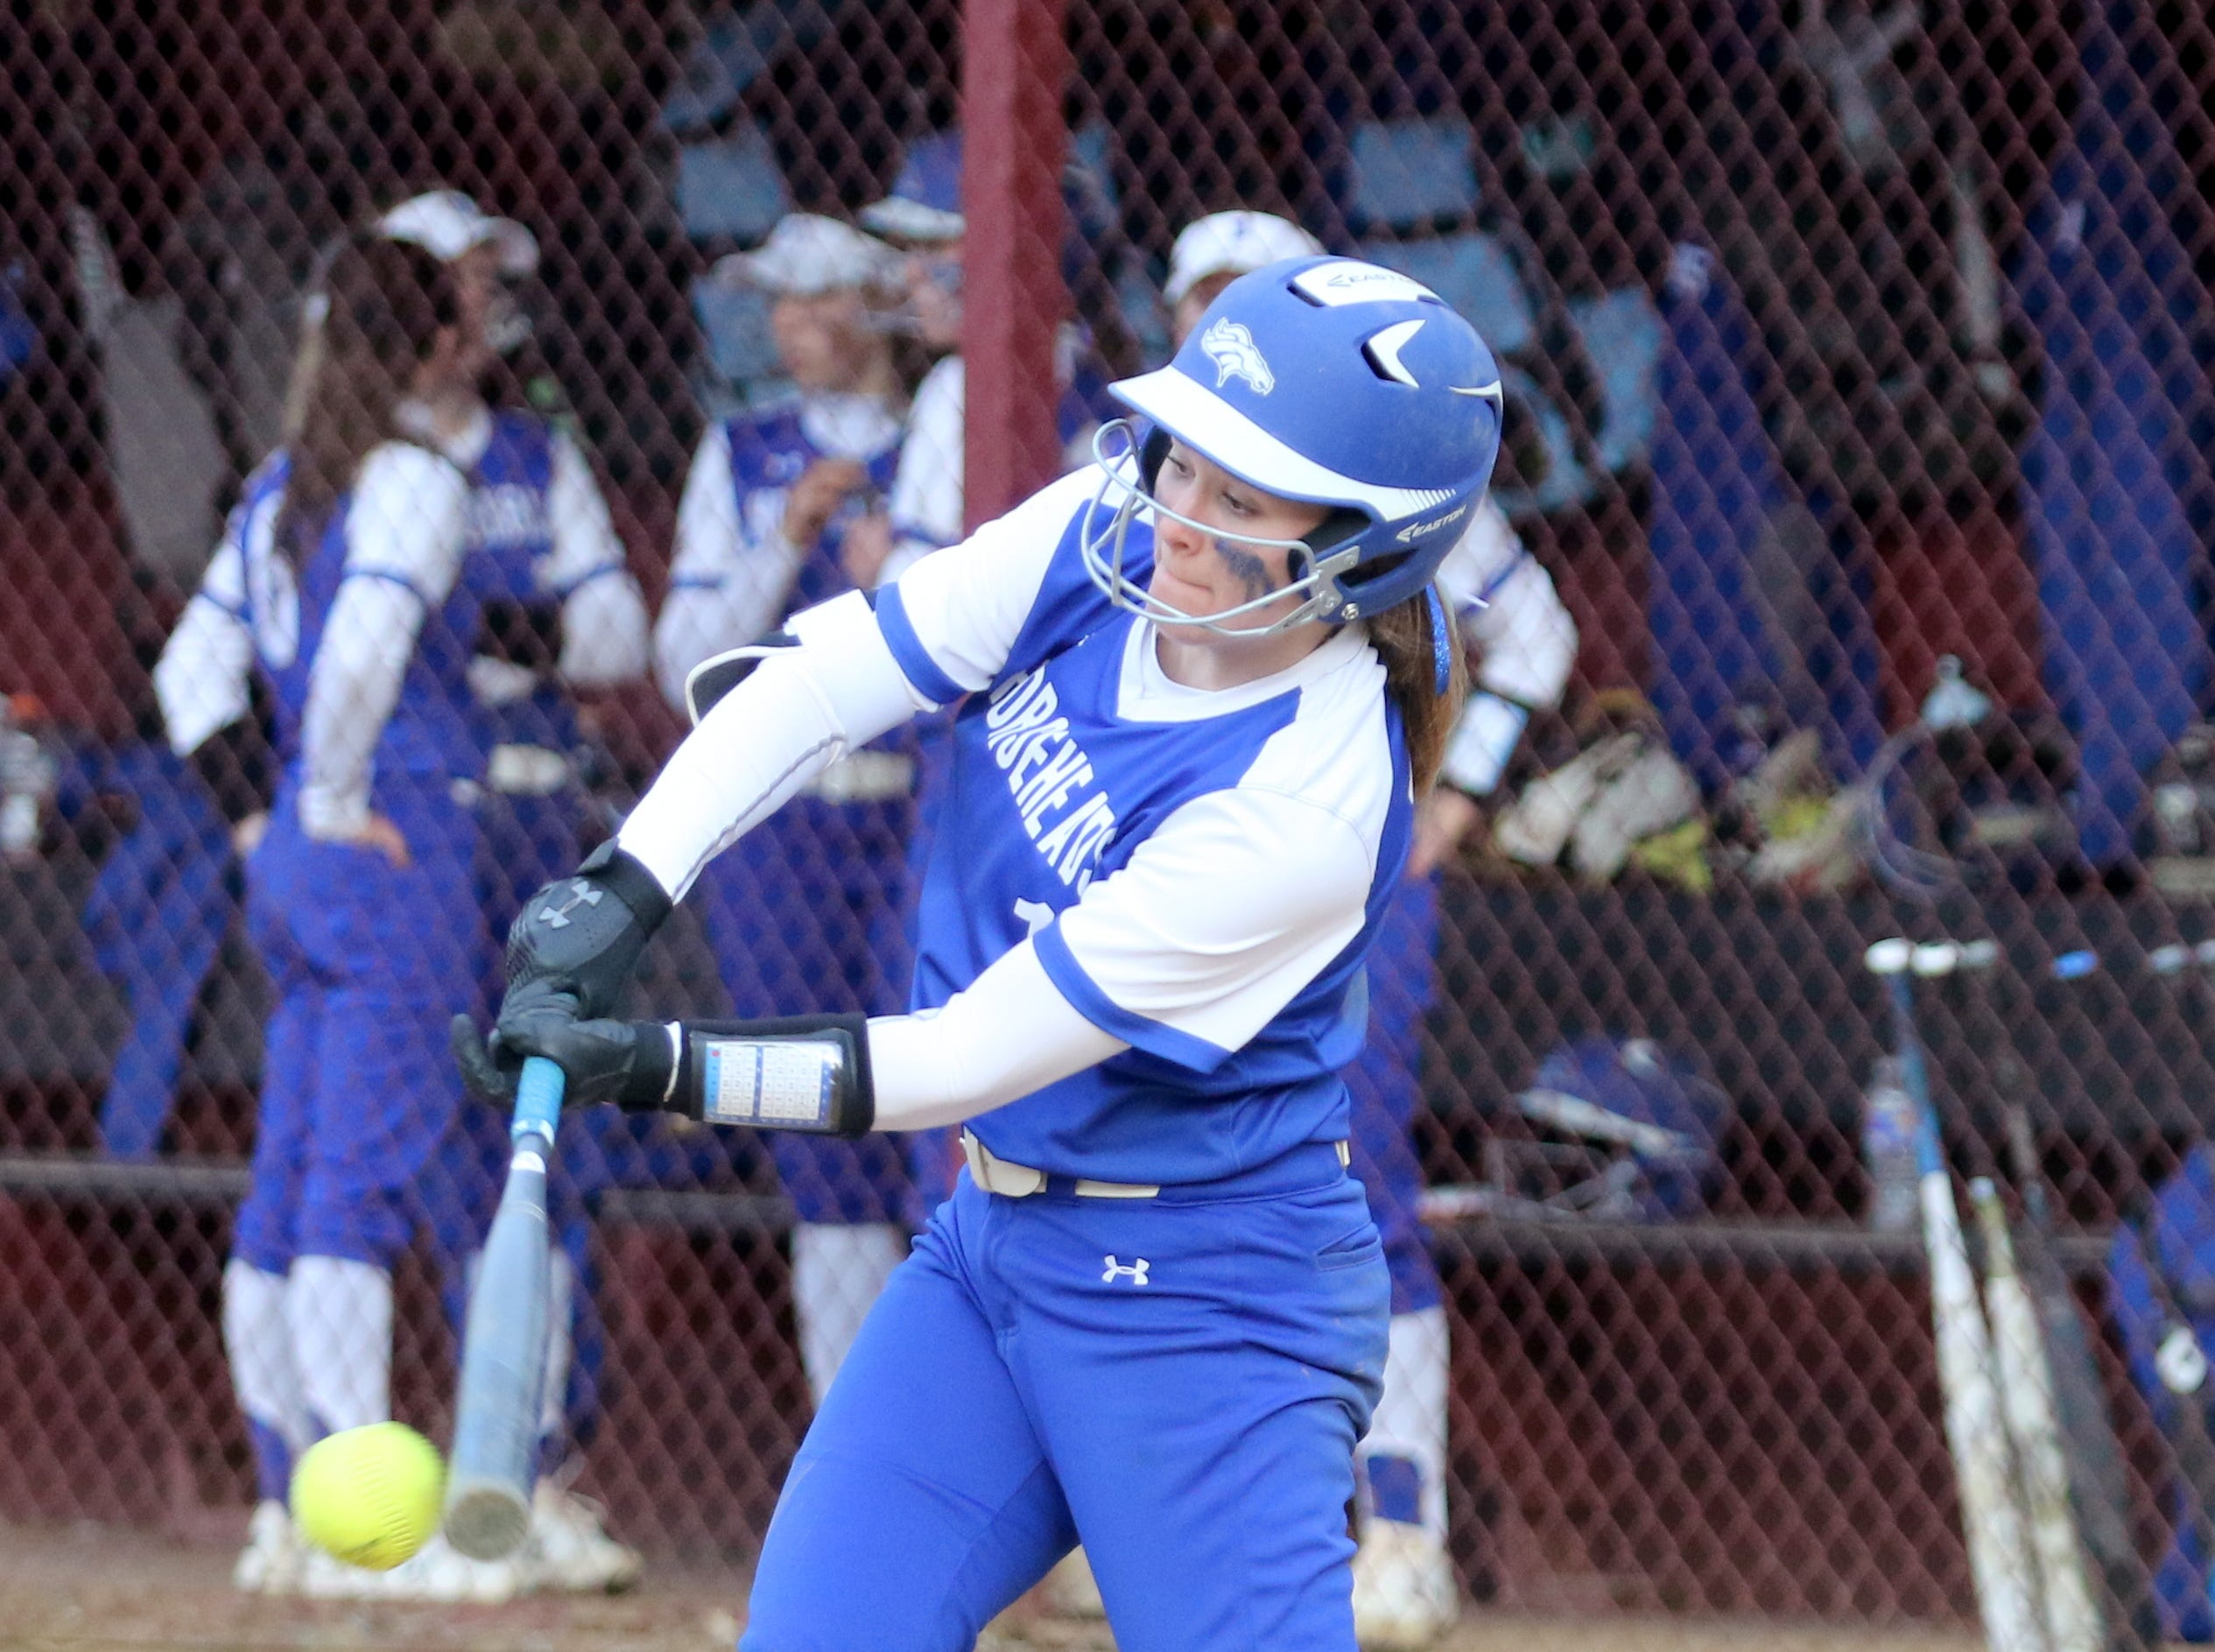 Action from Horseheads at Elmira softball April 11, 2019 at Ernie Davis Academy.